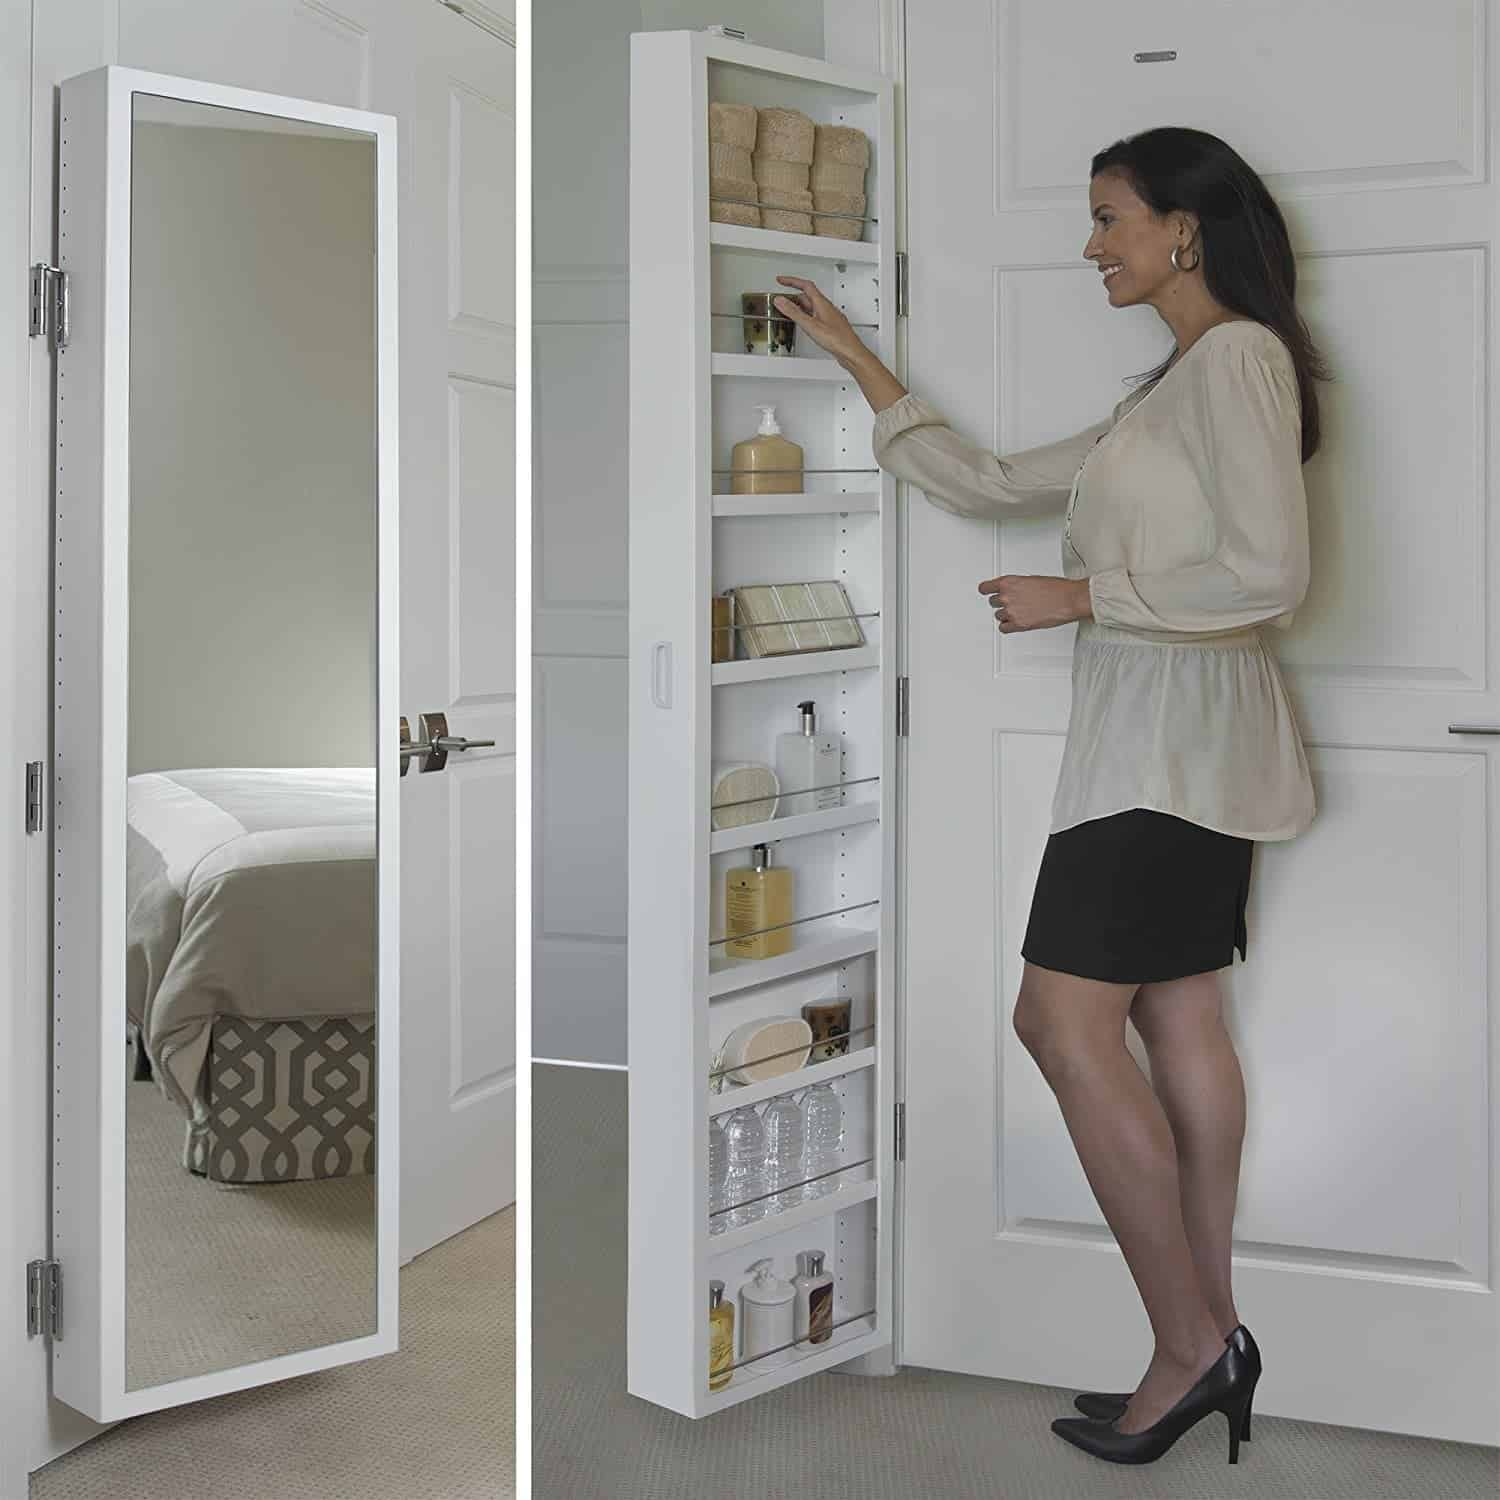 Full length storage mirror on back of white door opens to reveal extra storage shelves for small bathroom space.